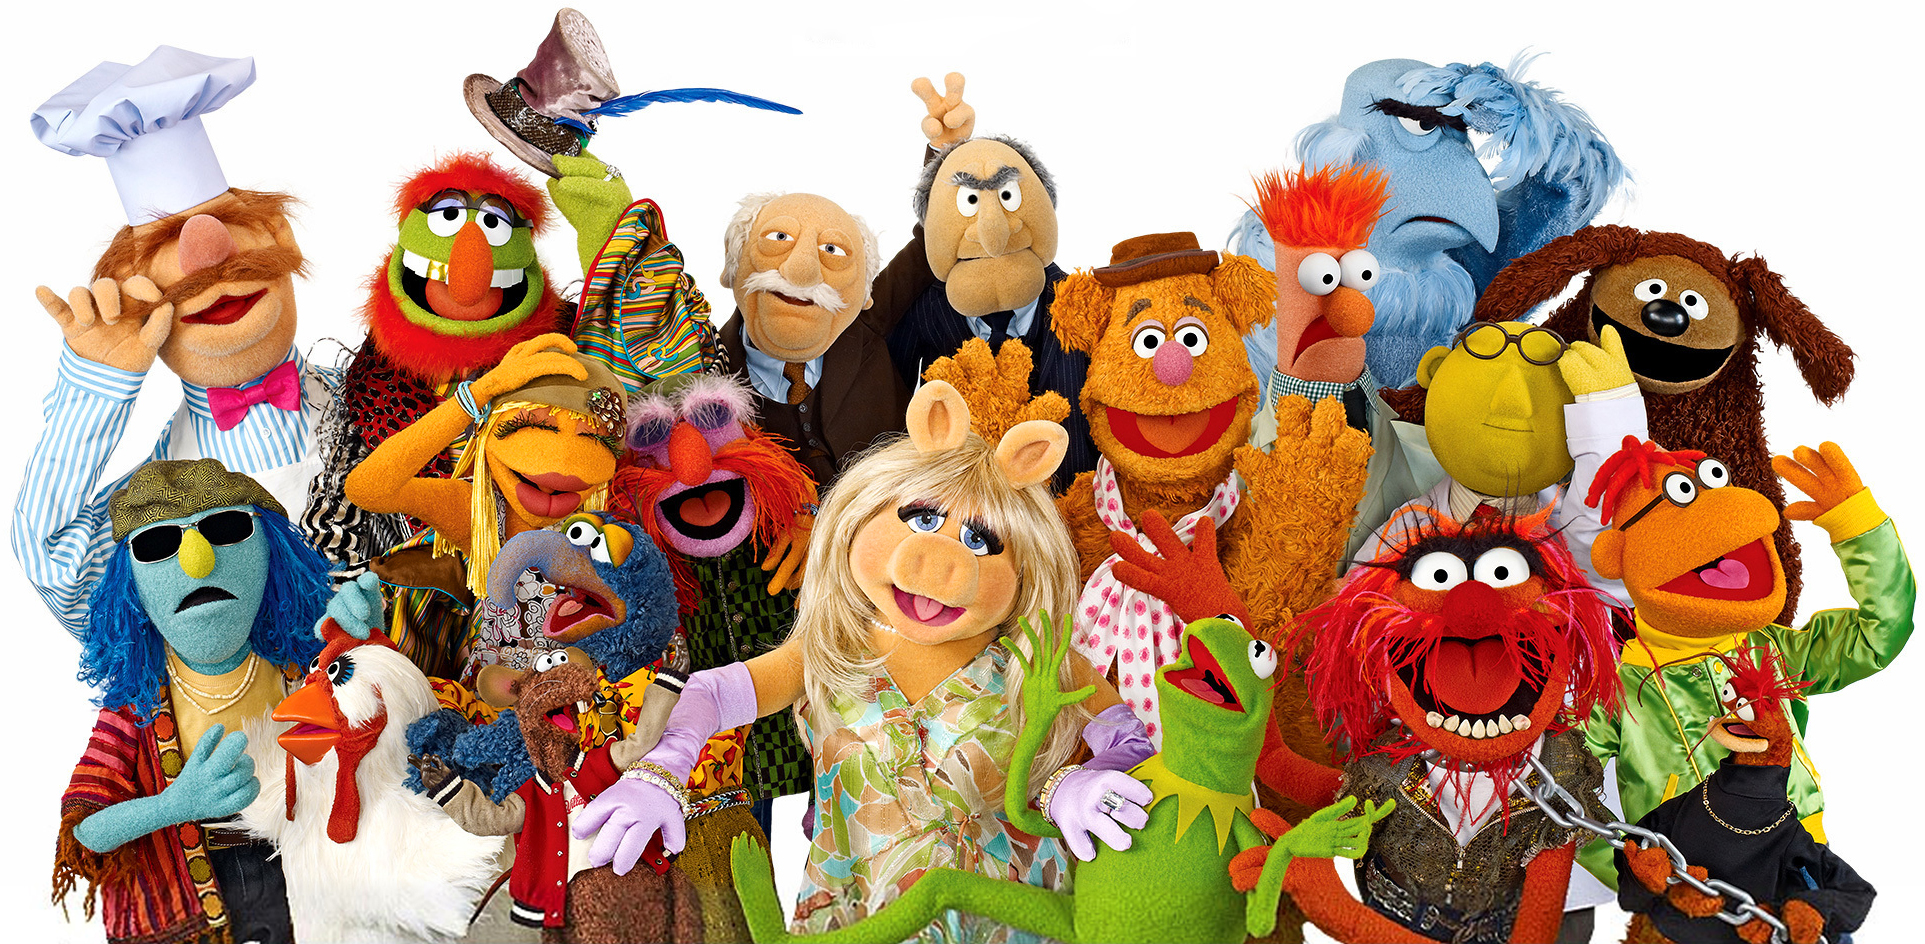 Featured on: THE MUPPETS (disambiguation) , THE MUPPETS productions